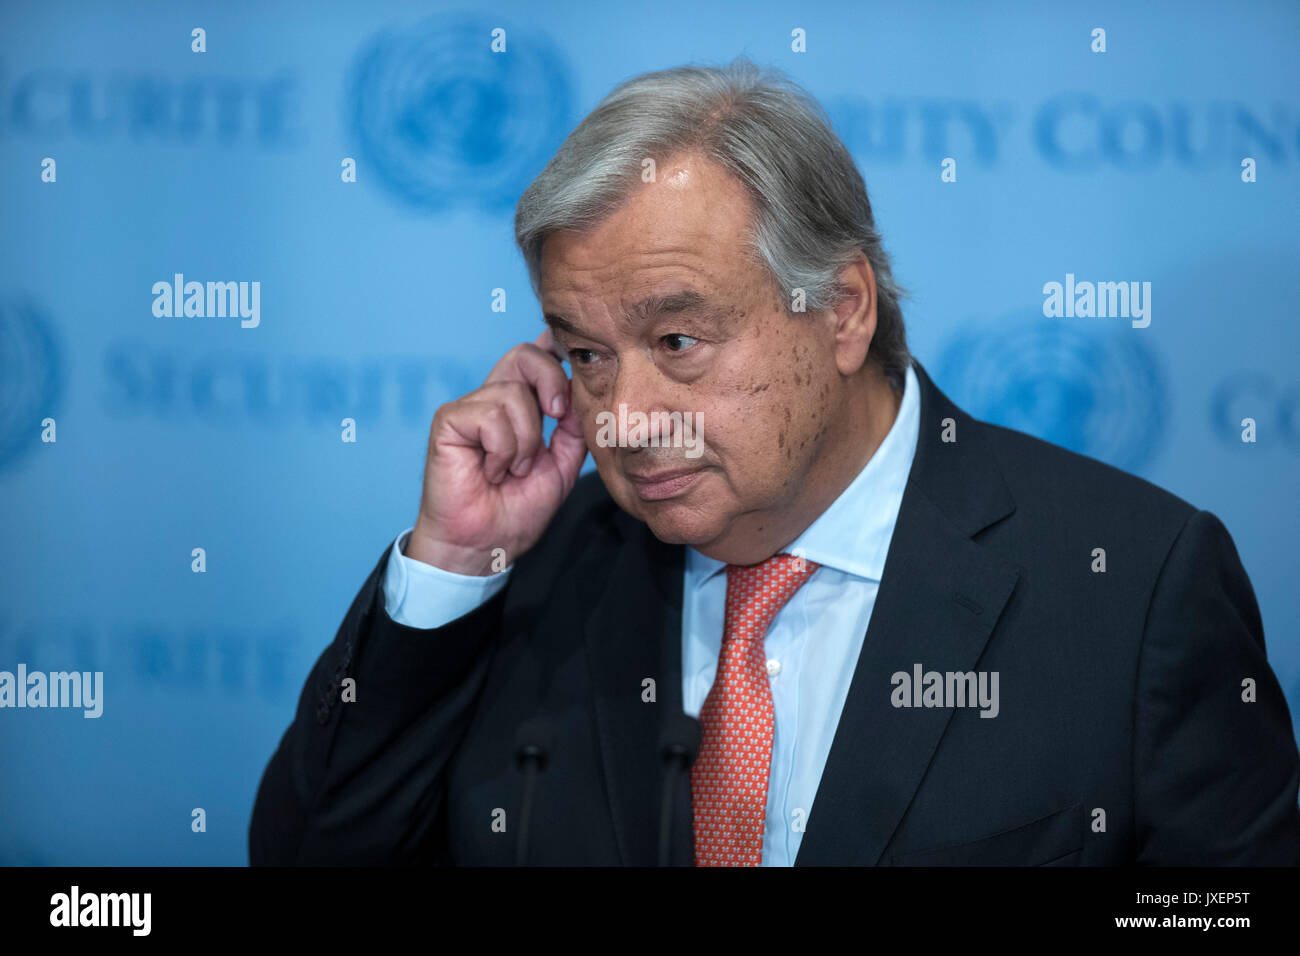 United Nations. 16th Aug, 2017. United Nations Secretary-General Antonio Guterres listens to a journalist's - Stock Image